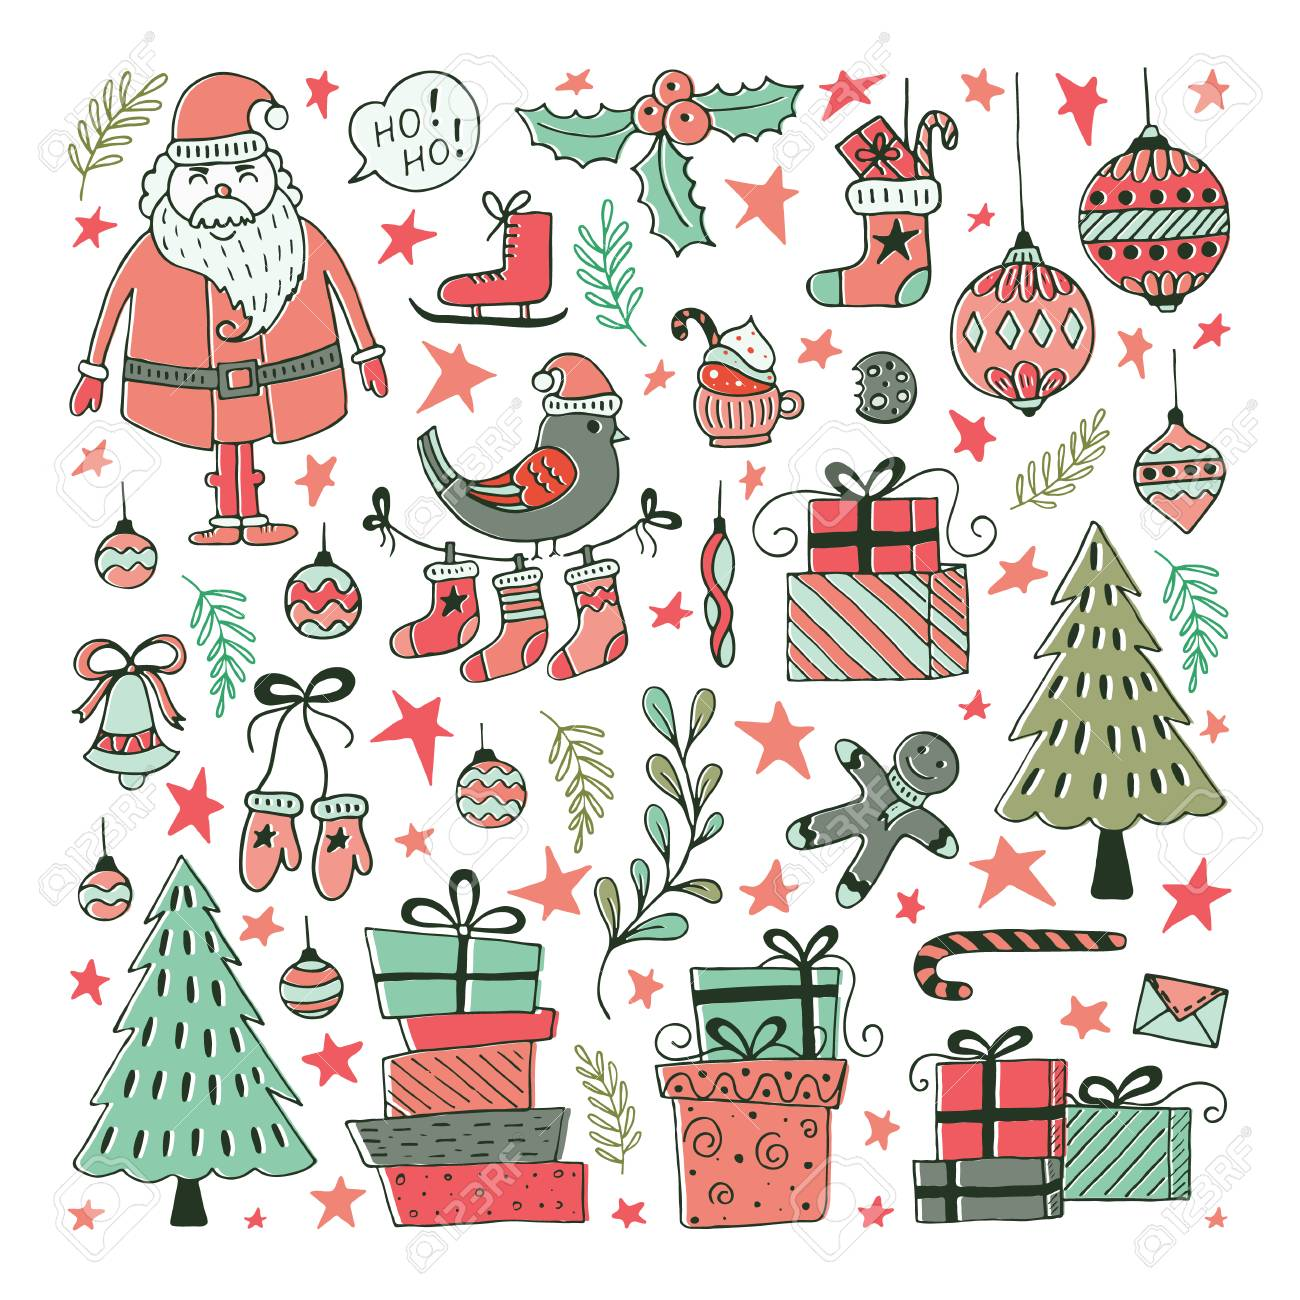 Christmas Illustrations.Vector Set Of Hand Drawn Christmas Illustrations Clipart Collection